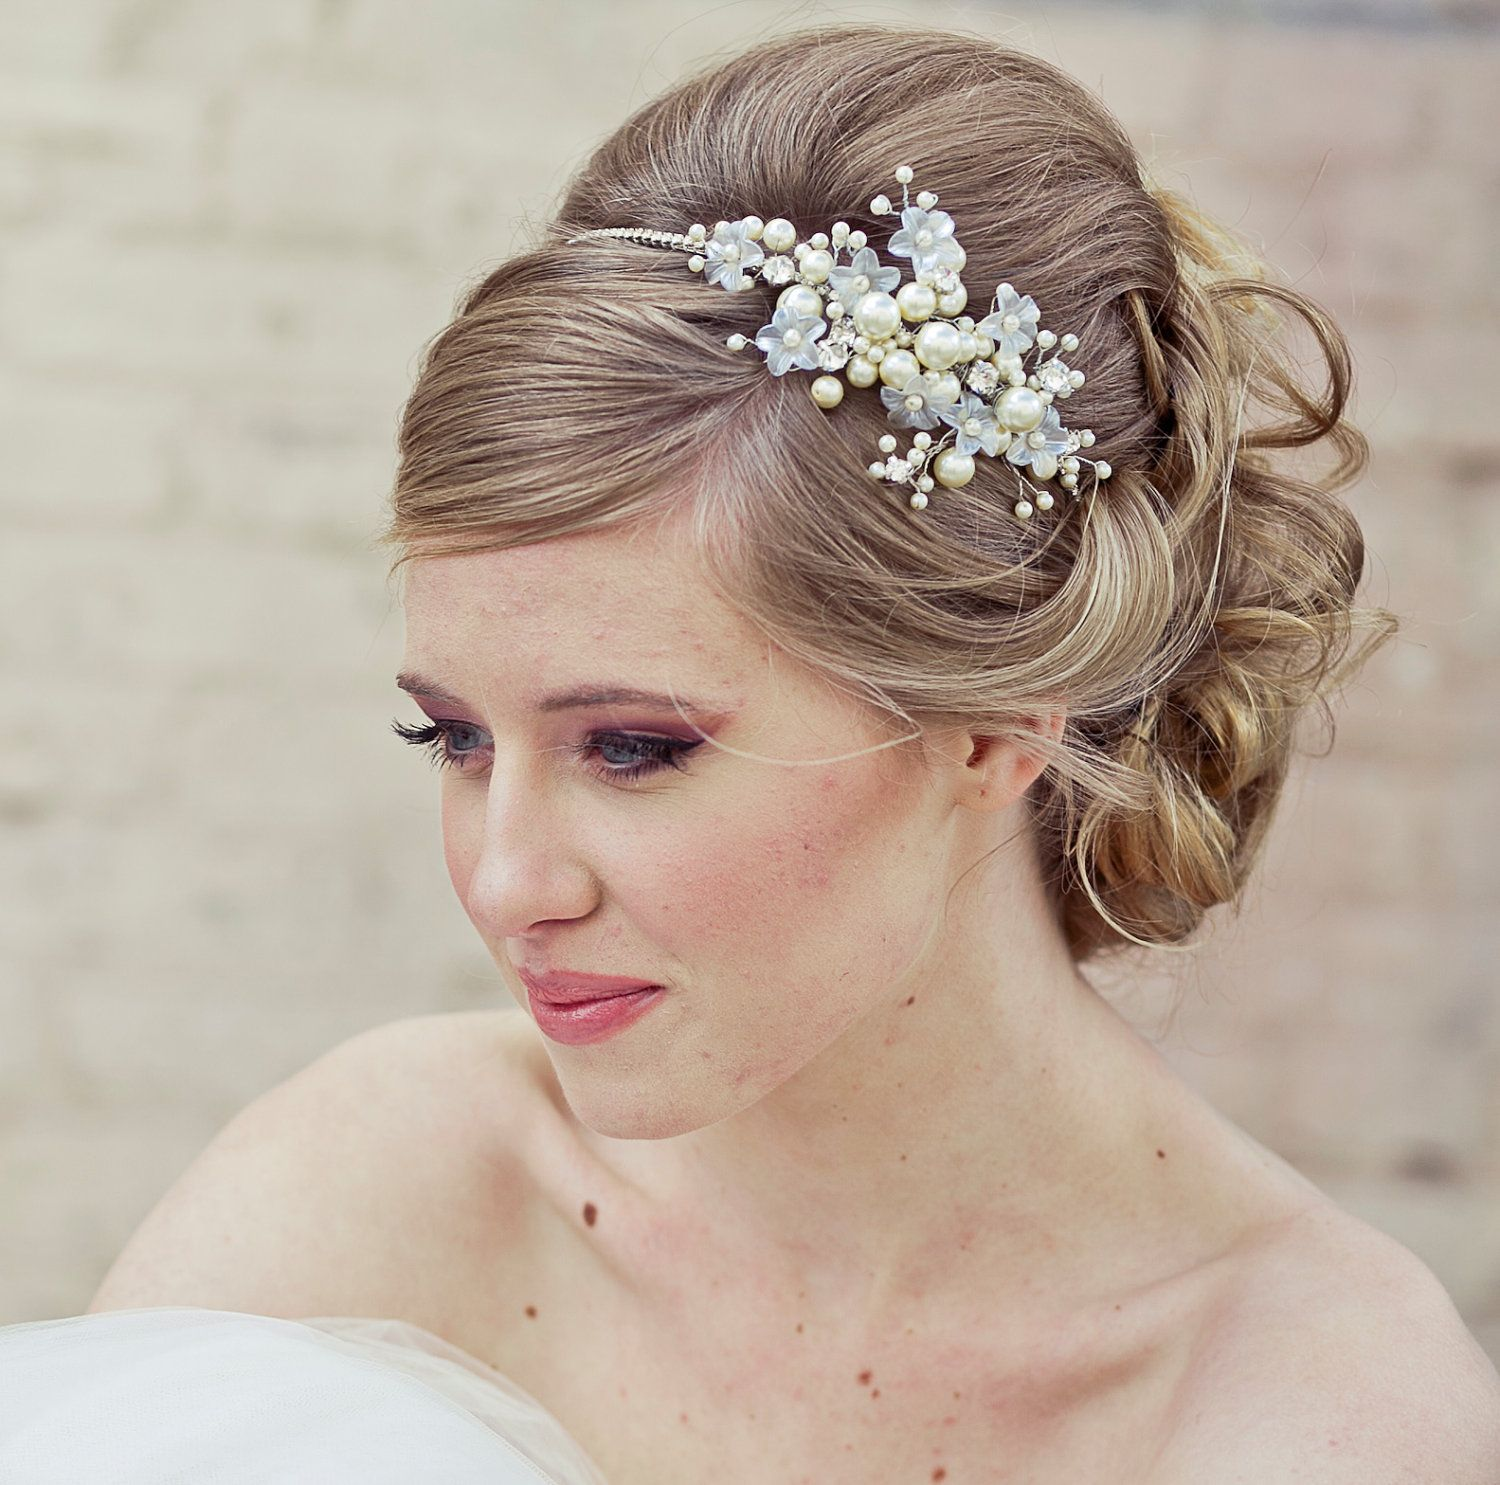 bridal headband, rhinestone wedding tiara with wired flowers and